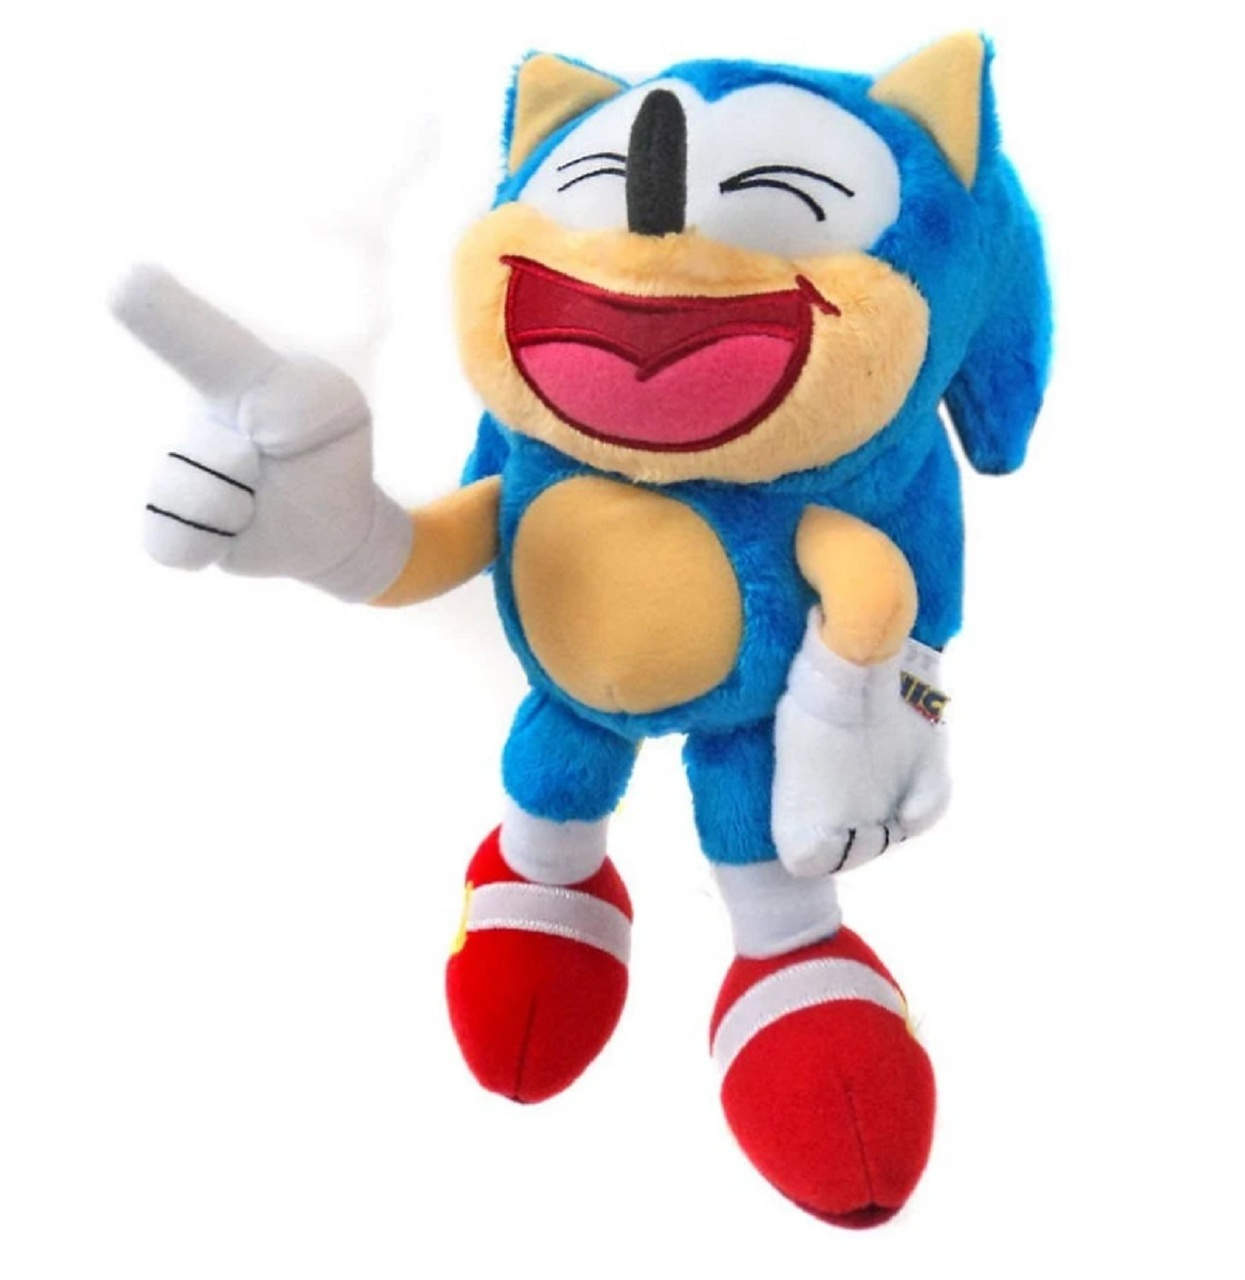 Plush Toy Sonic The Hedgehog Classic Sonic 20cm Laughing By Tomy Shop Online For Toys In The United States